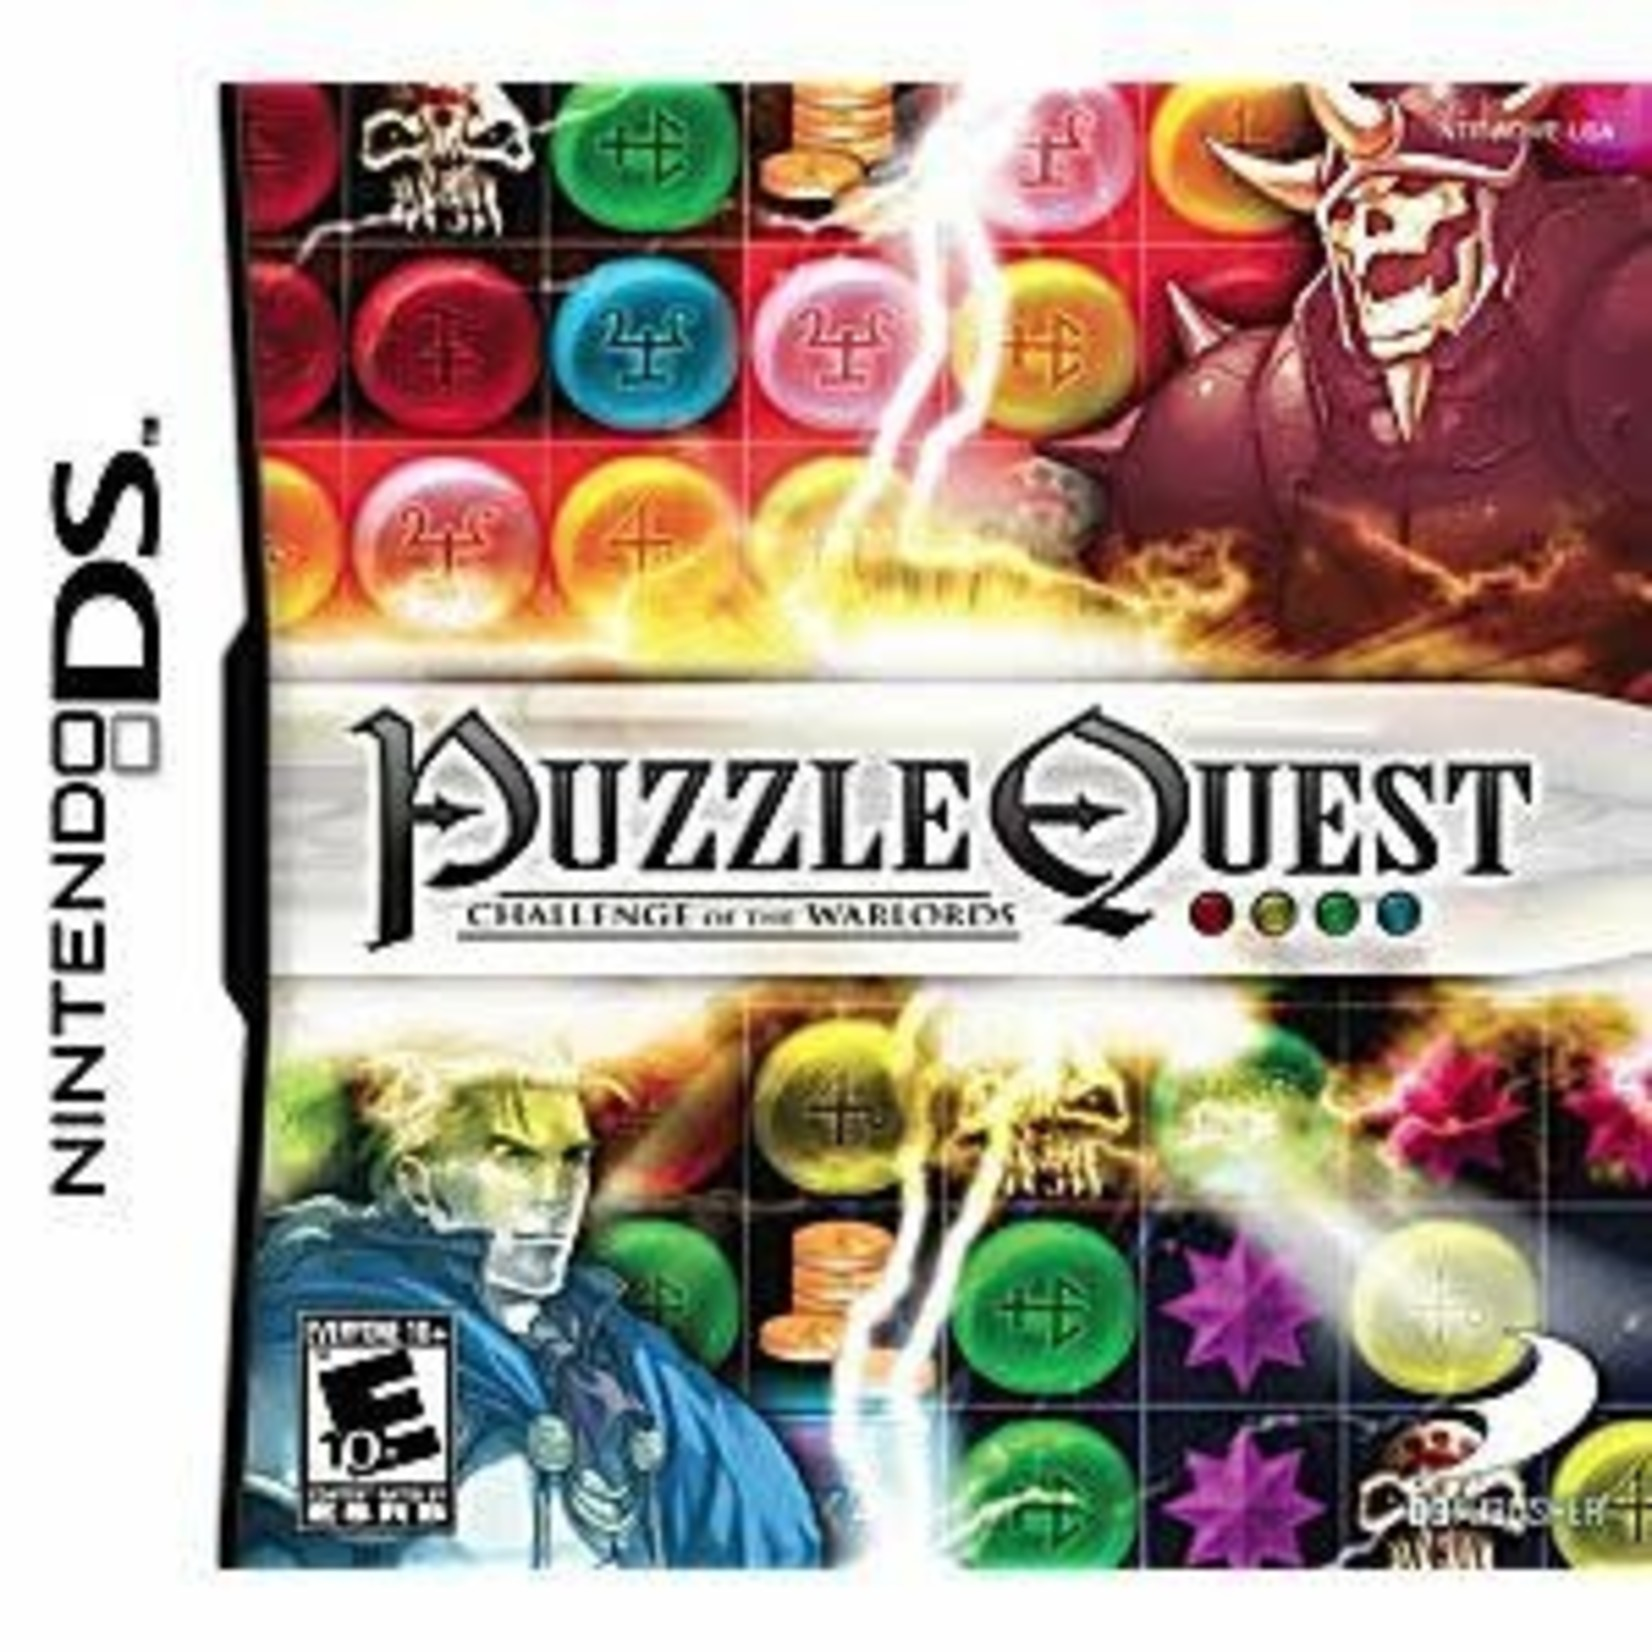 DS-Puzzle Quest: Challenge of the Warlords